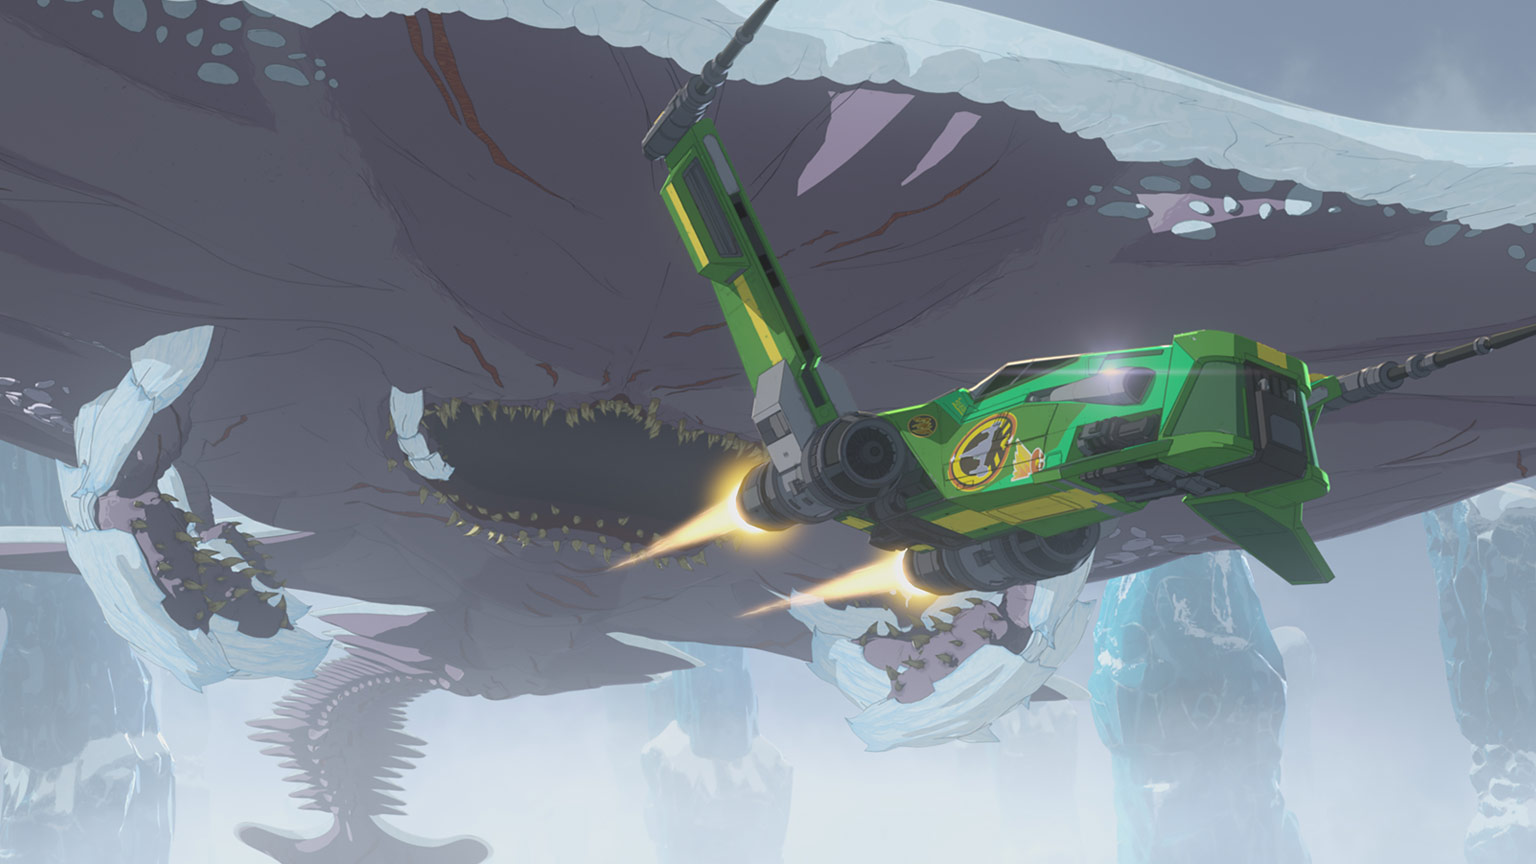 Hype flying past ice creature